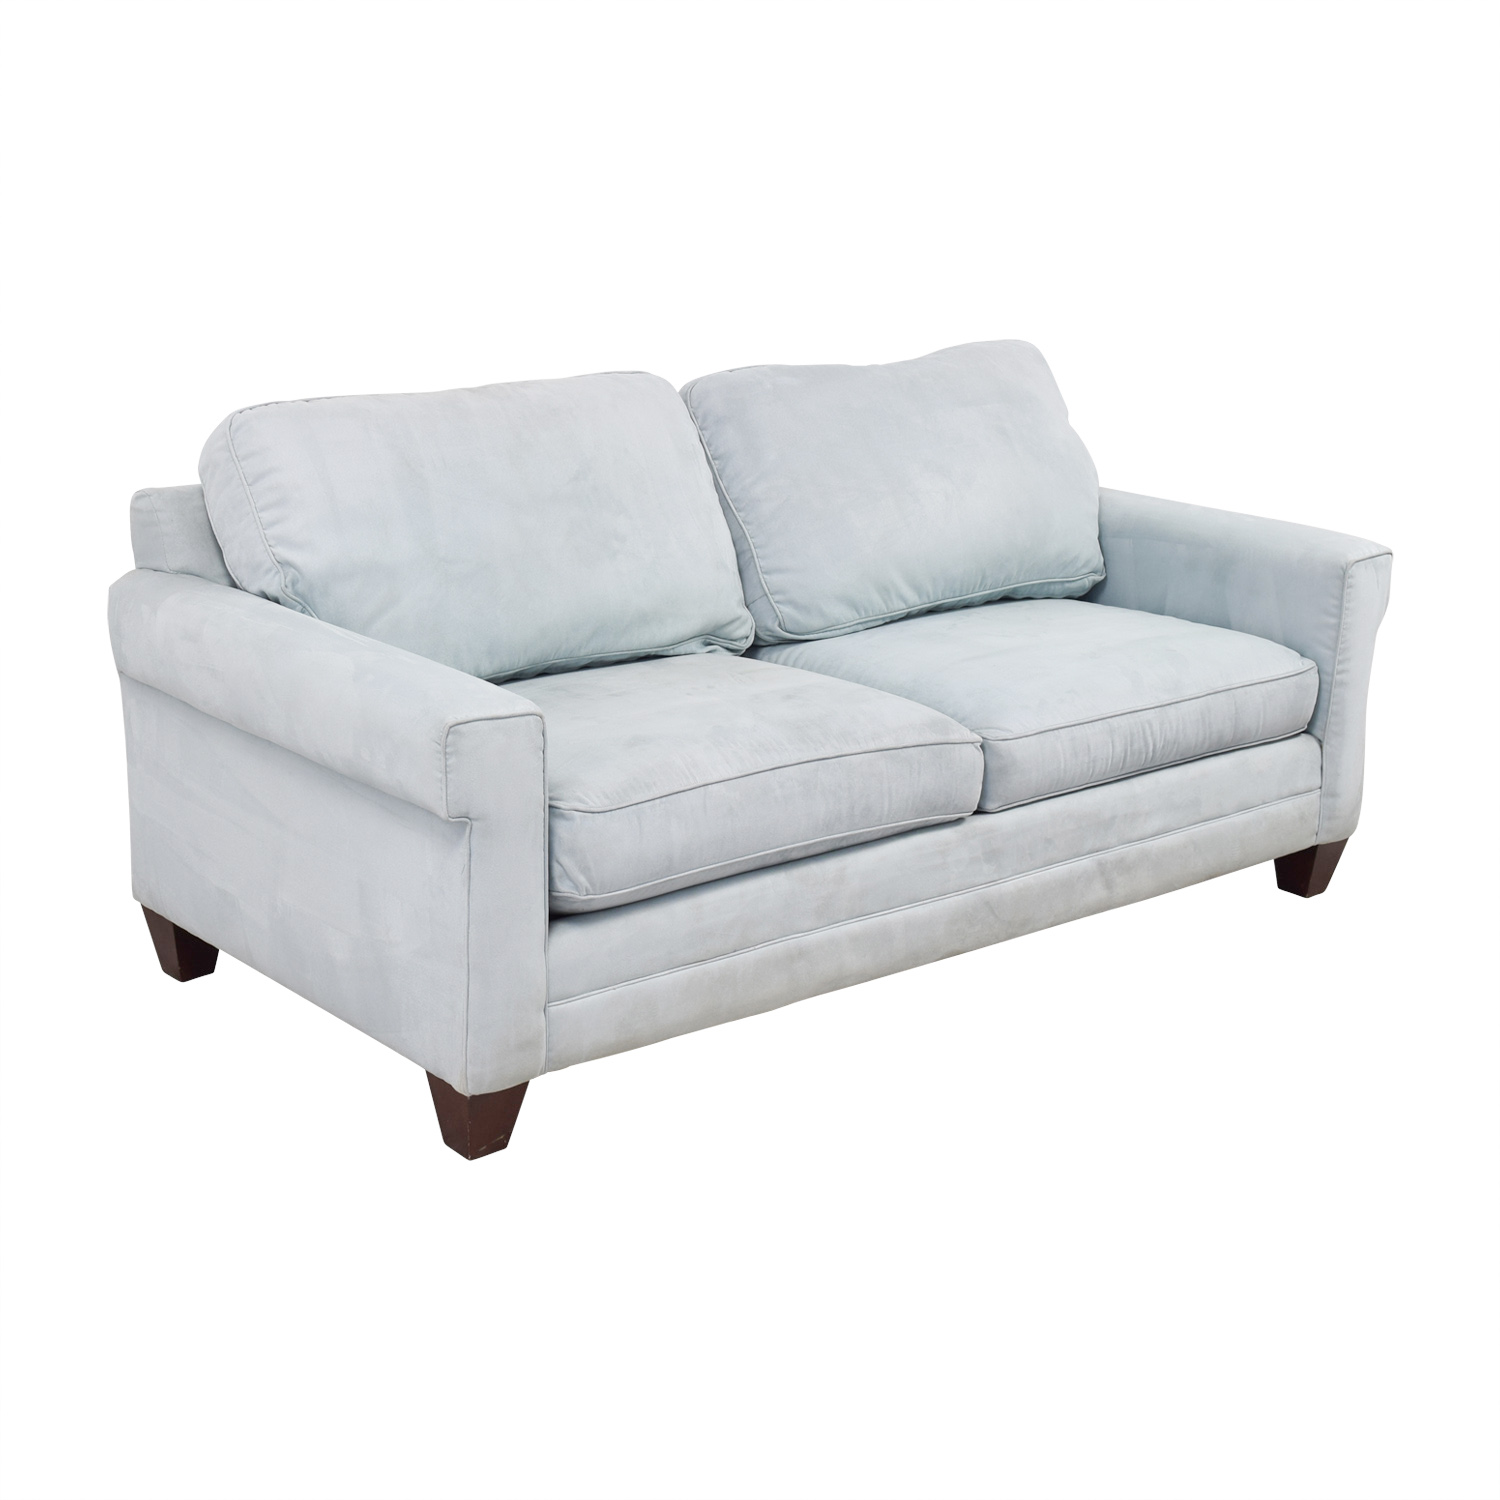 ... Buy Bassett Light Blue Micro Fiber Two Cushion Couch Bassett ...